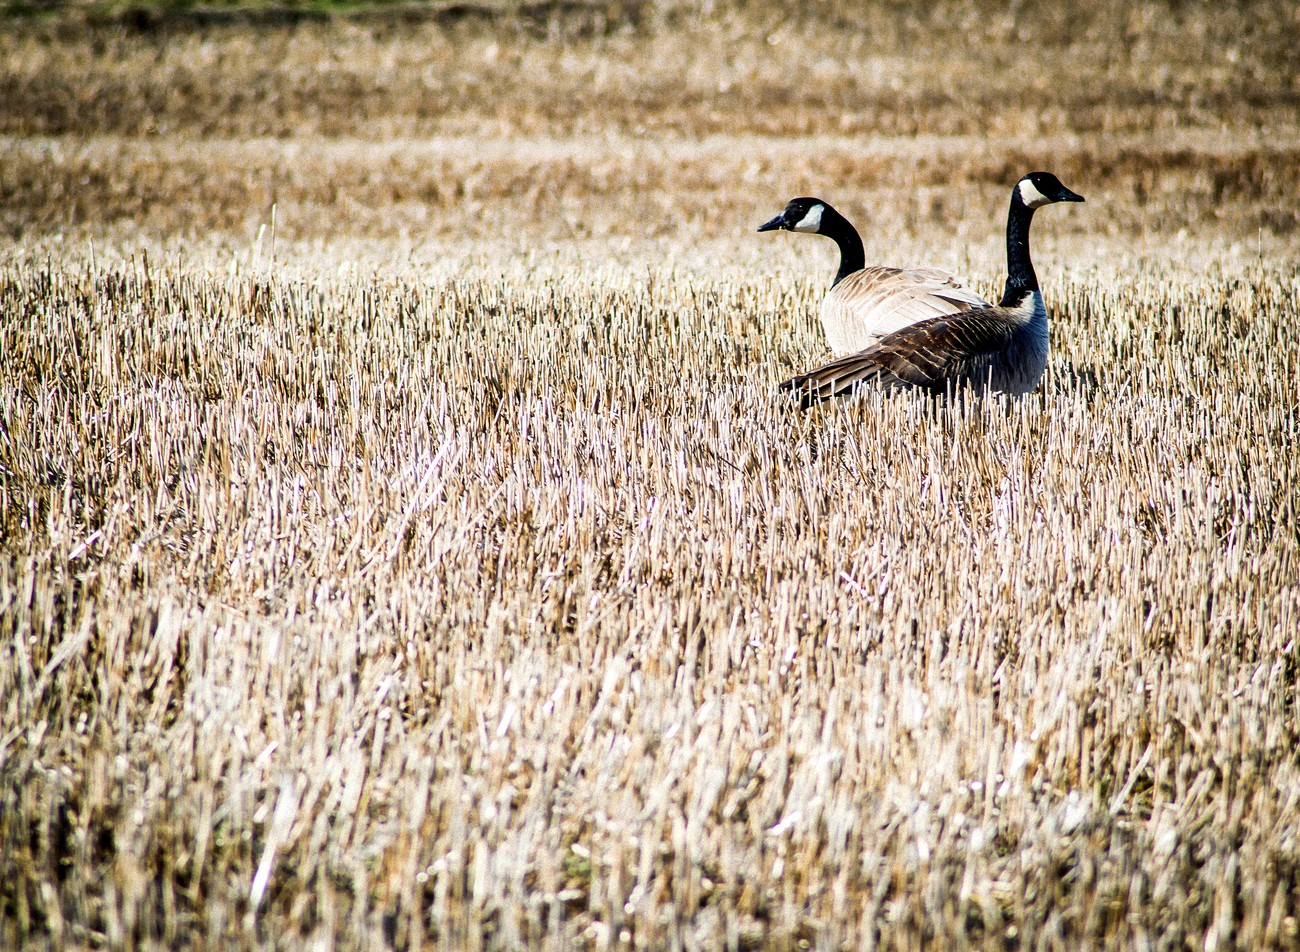 Spring time and the Canadian Geese are looking for nesting areas.